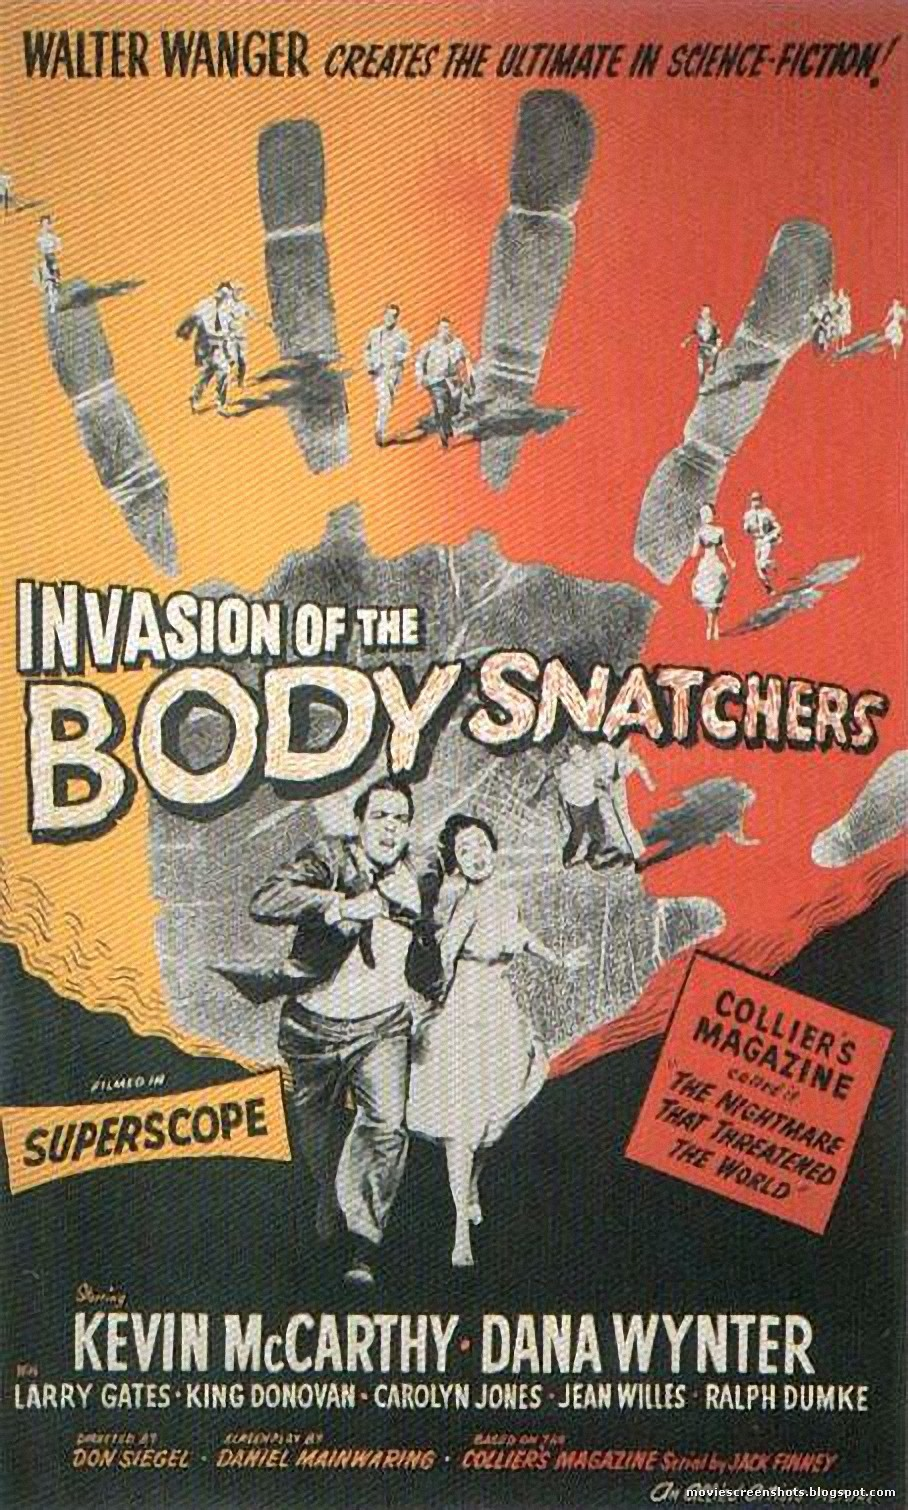 Invasion of the body snatchers essay